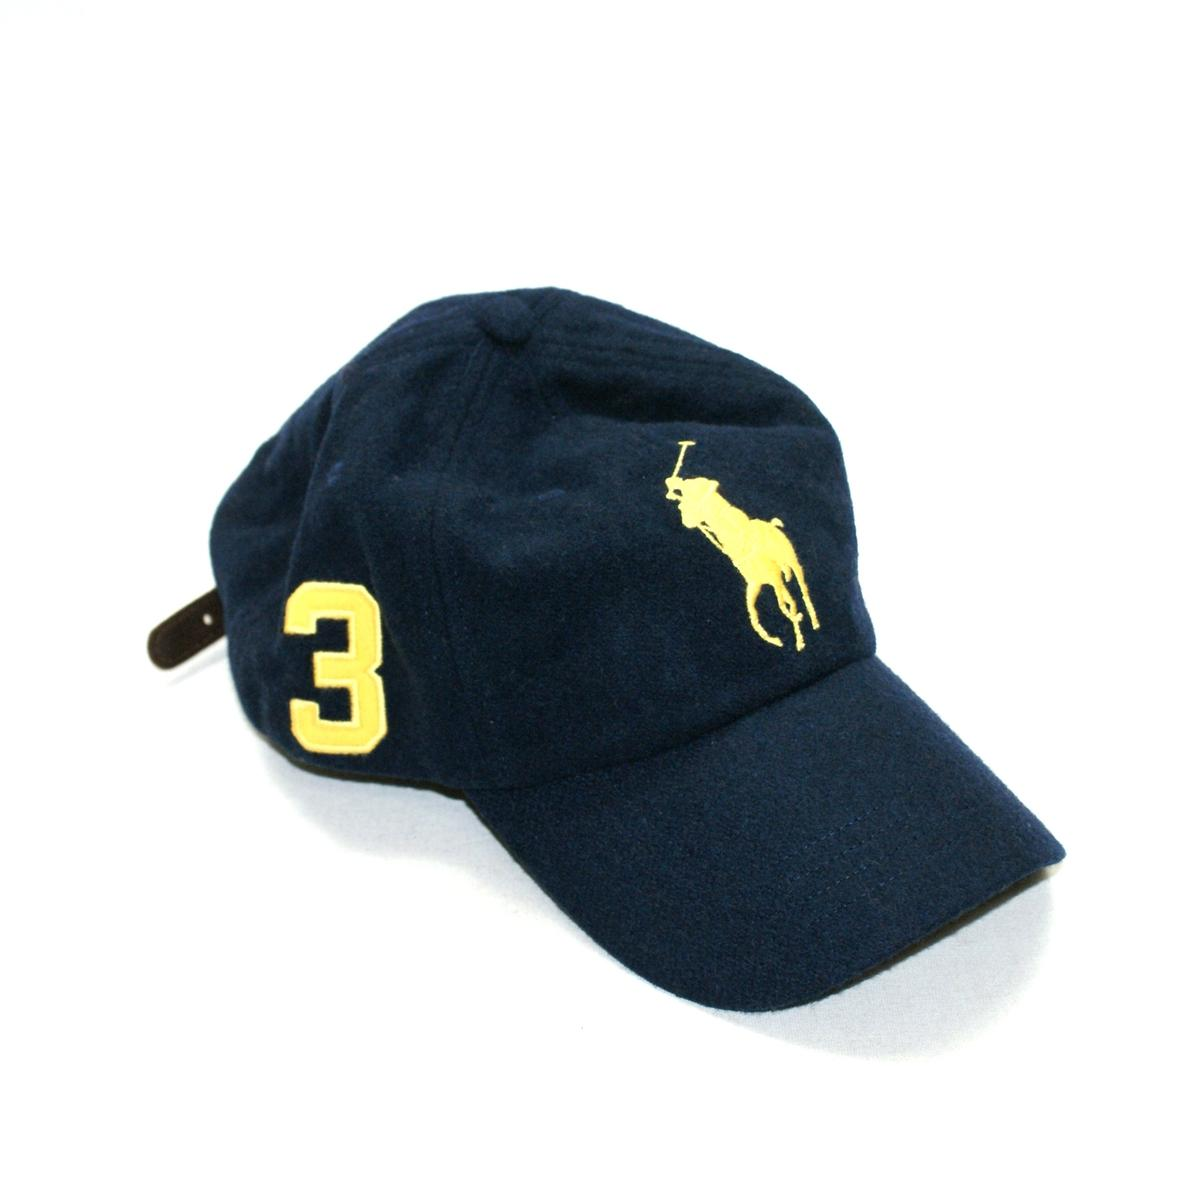 36026bf7aa790 Home · Polo Ralph Lauren · Classics Signature Big Pony Navy Blue Wool Cap   Hat MCMLXVII. CLICK THUMBNAIL TO ZOOM. Found ...